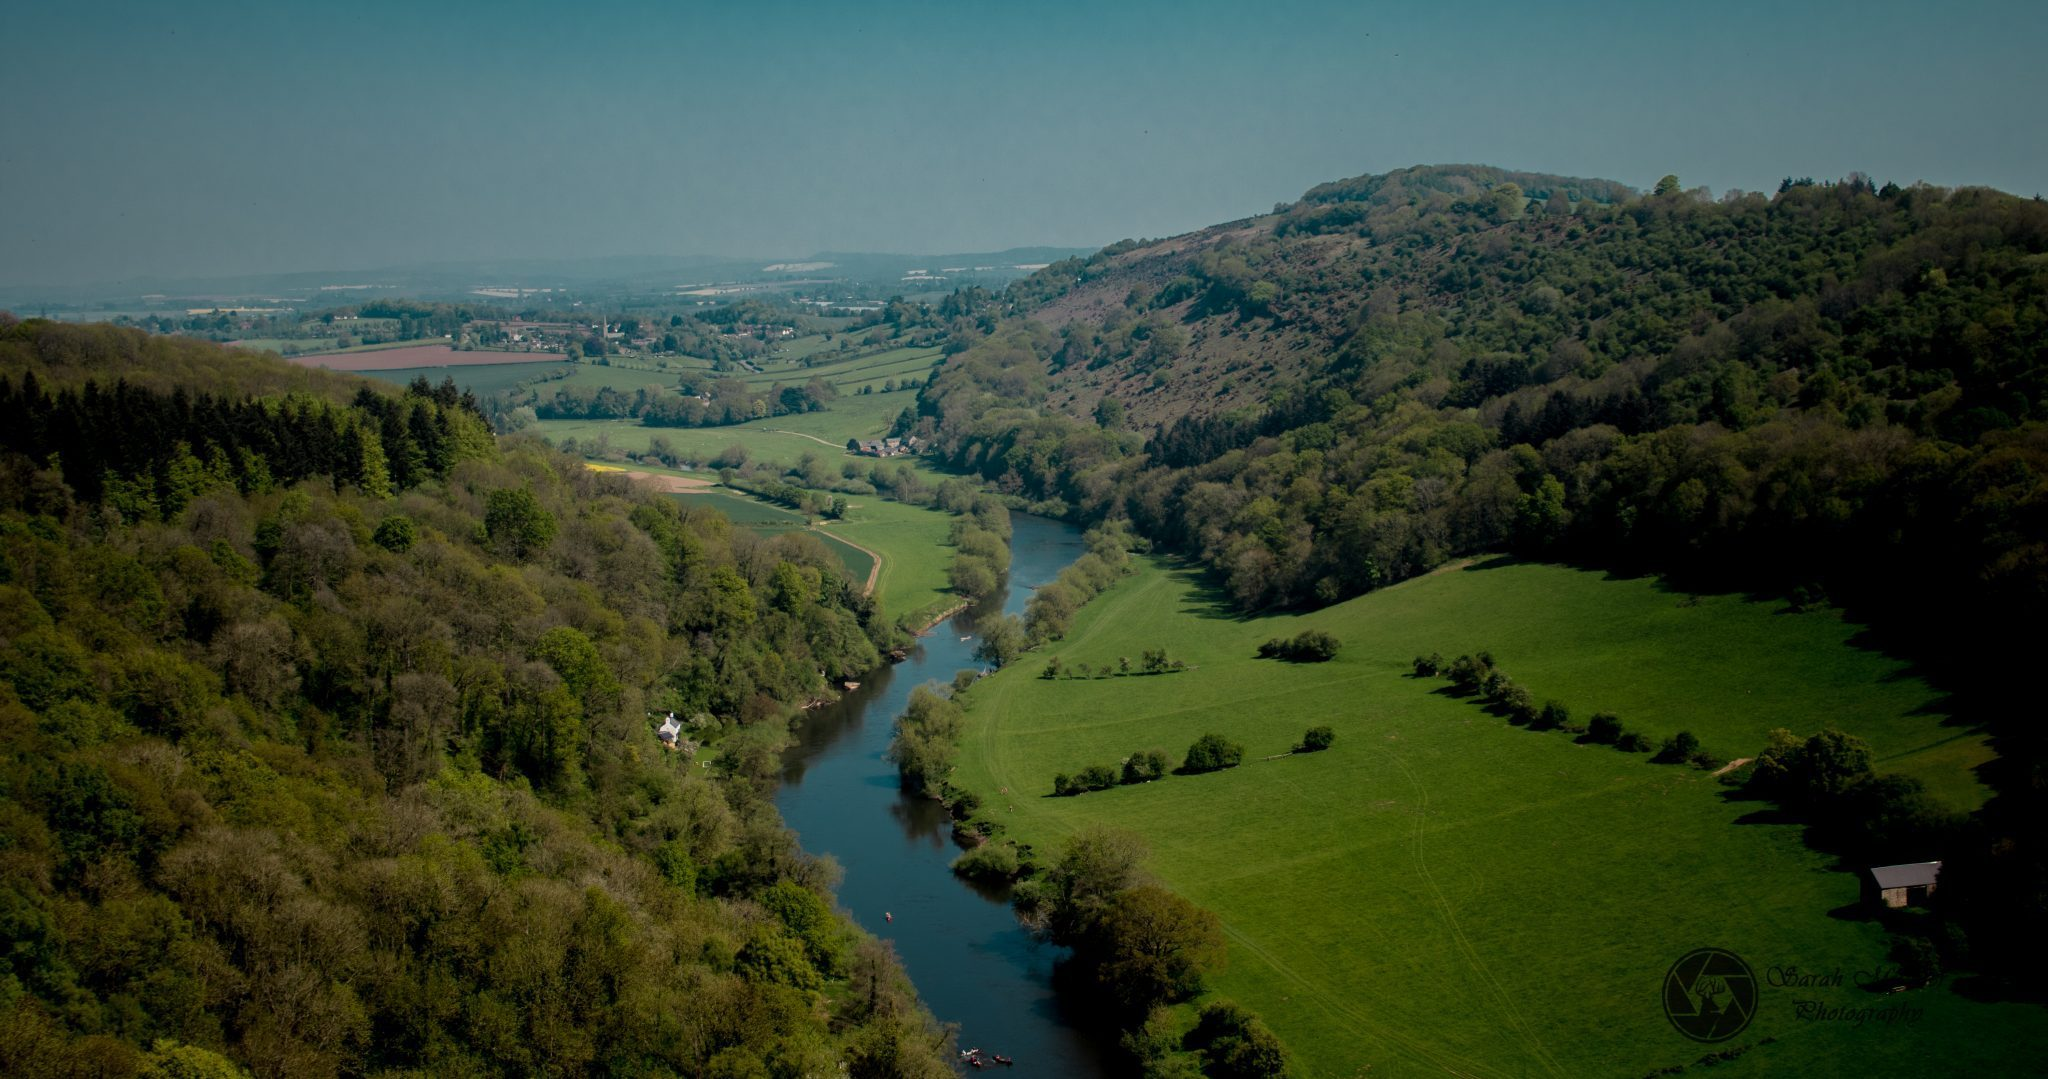 Walk the beautiful Wye valley to the ancient Tintern Abbey